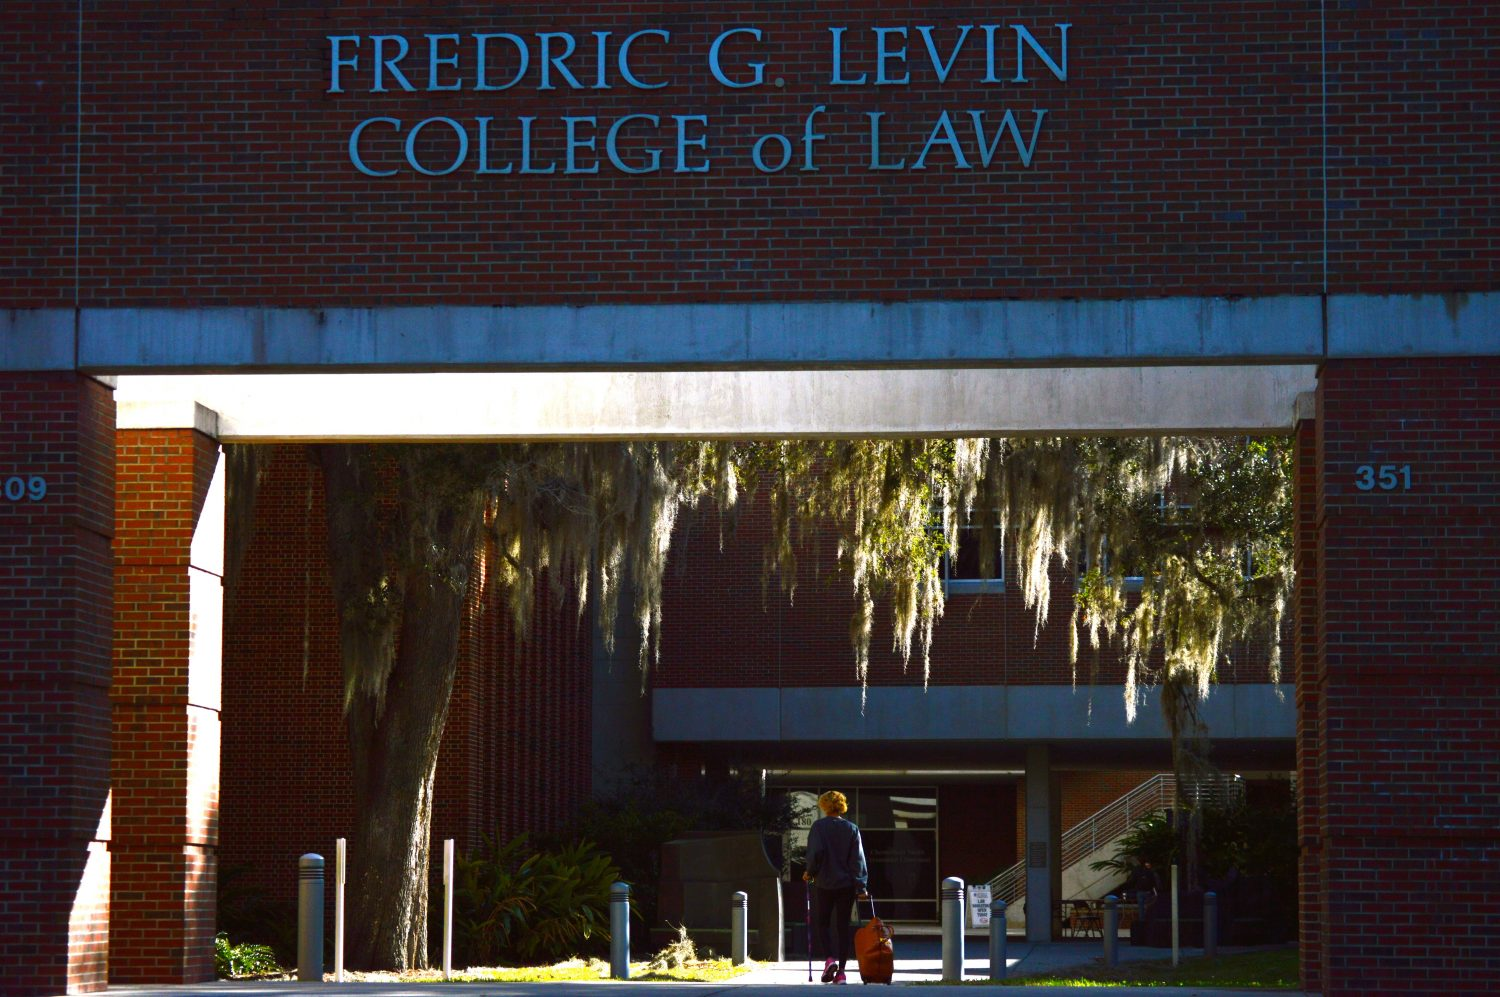 Law School Enrollment Among Minorities Decreases Nationally